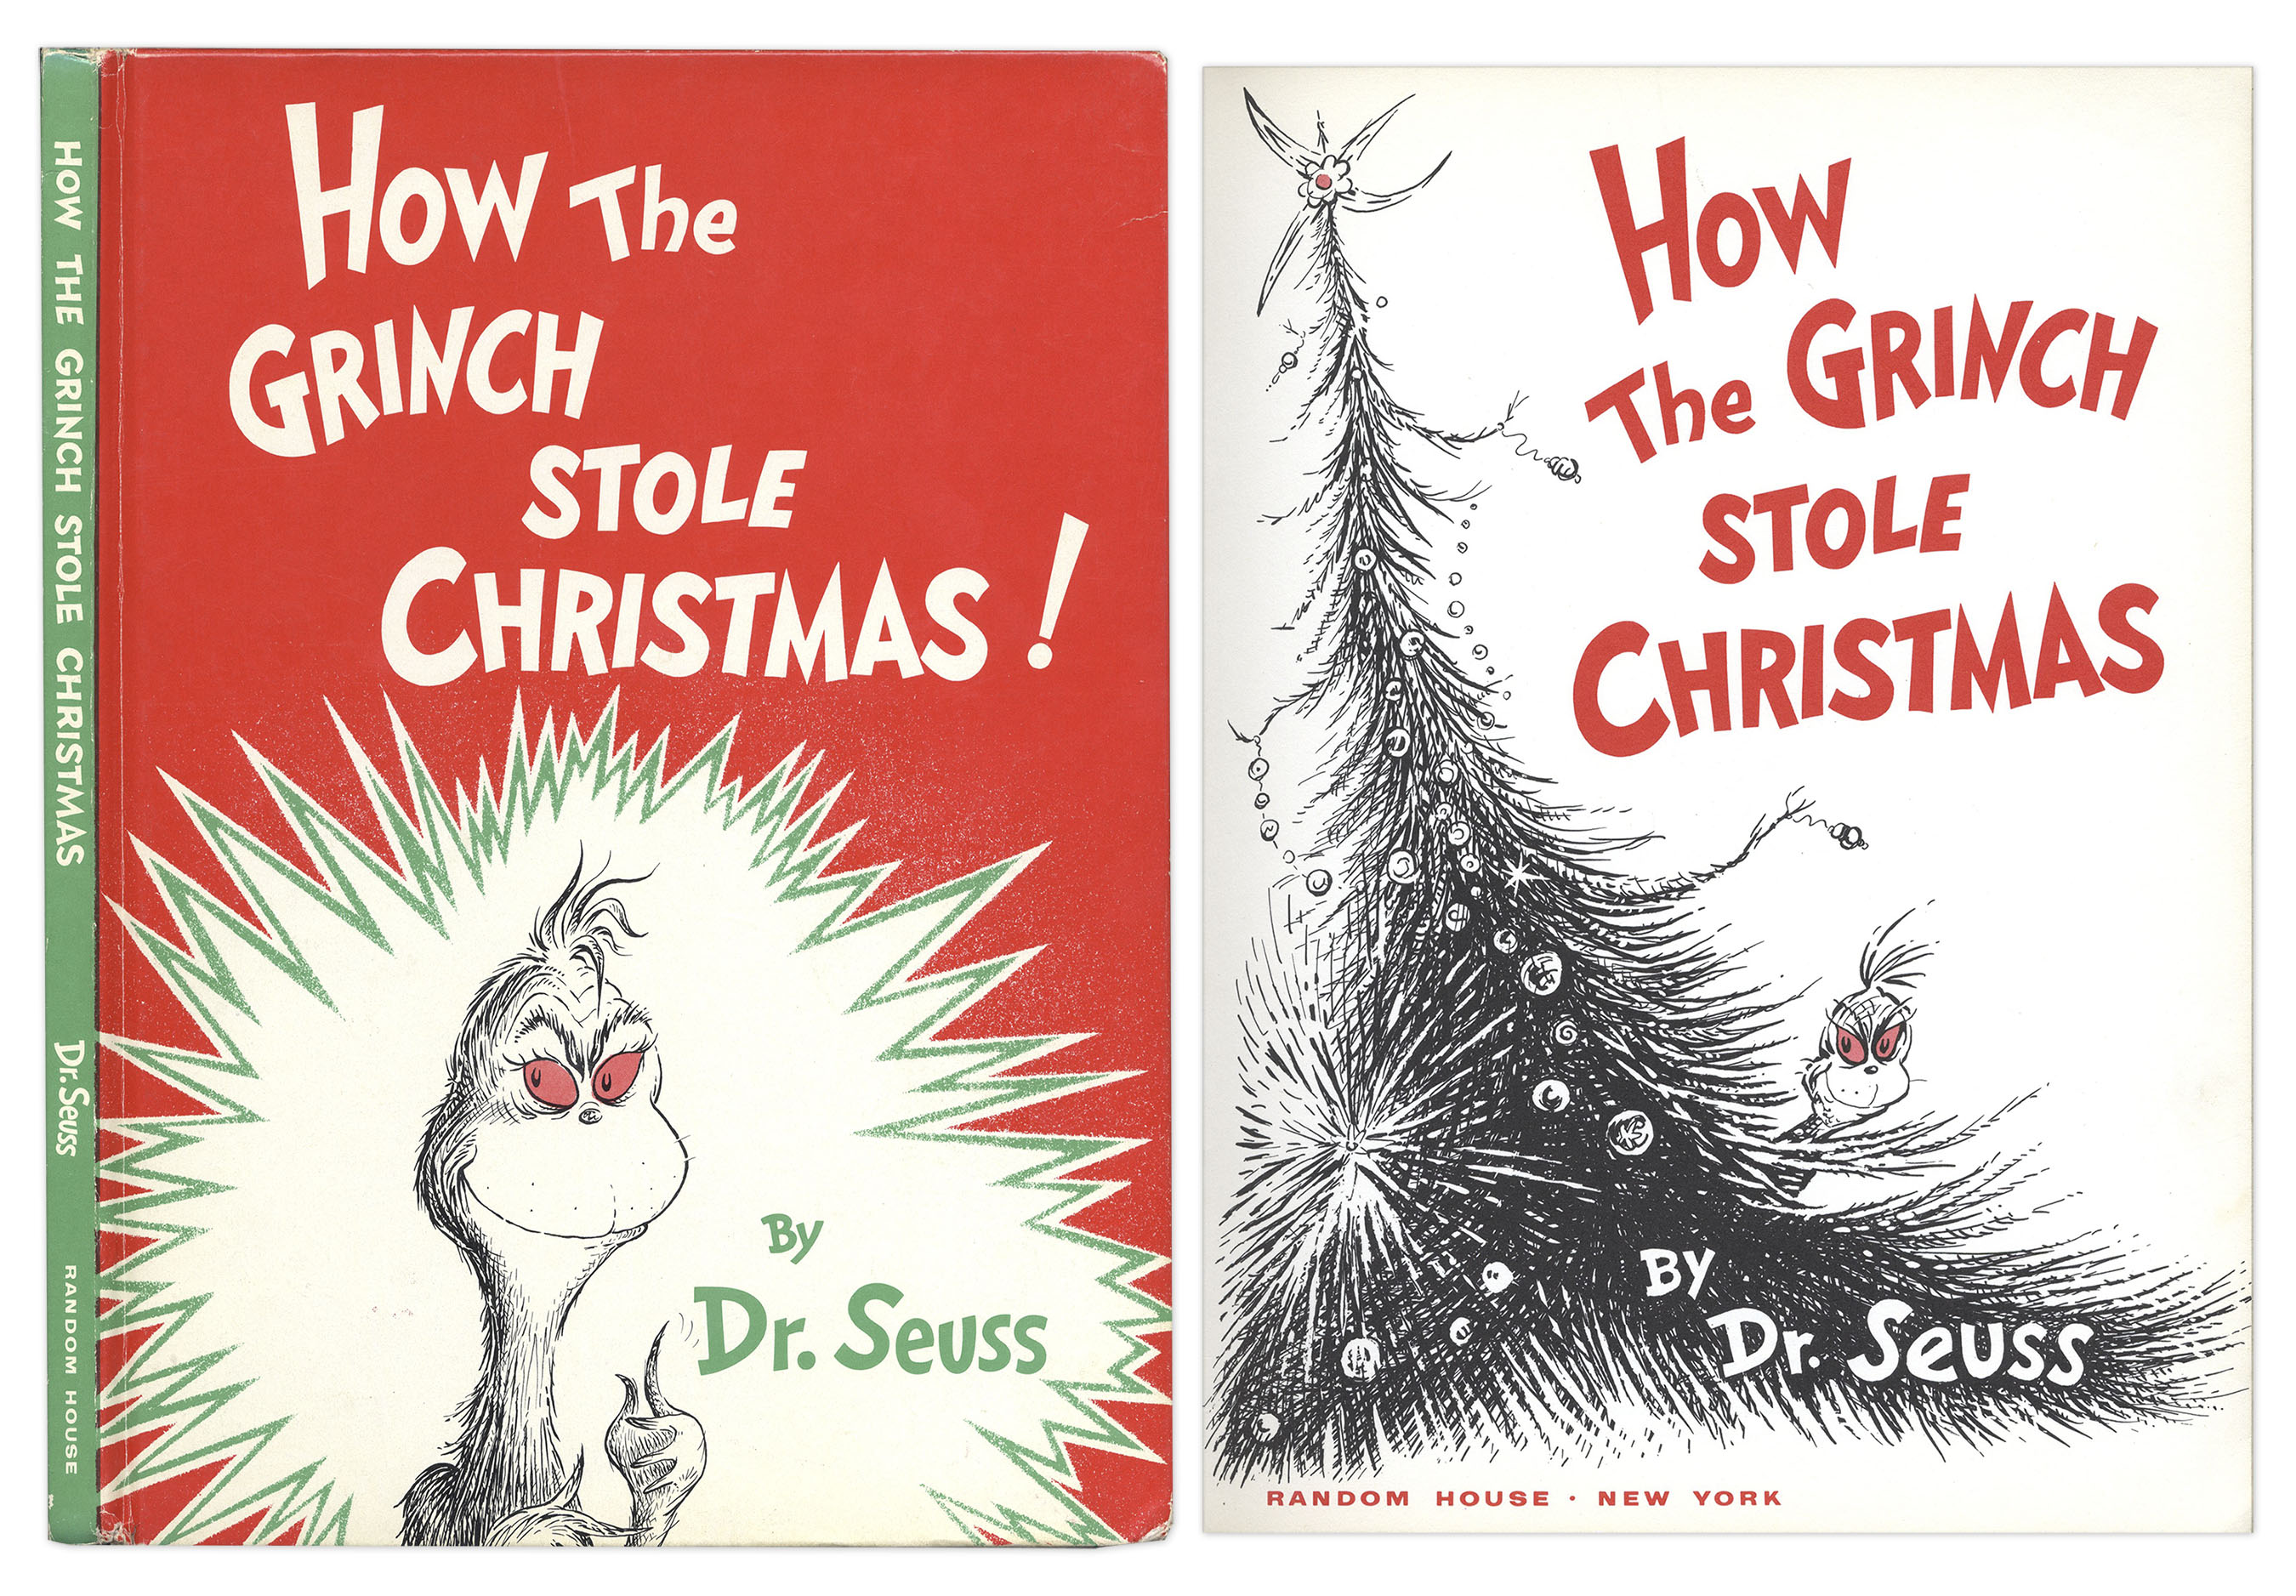 Dr Seuss The Grinch Who Stole Christmas Poem.How The Grinch Stole Christmas By Dr Seuss Tygertale